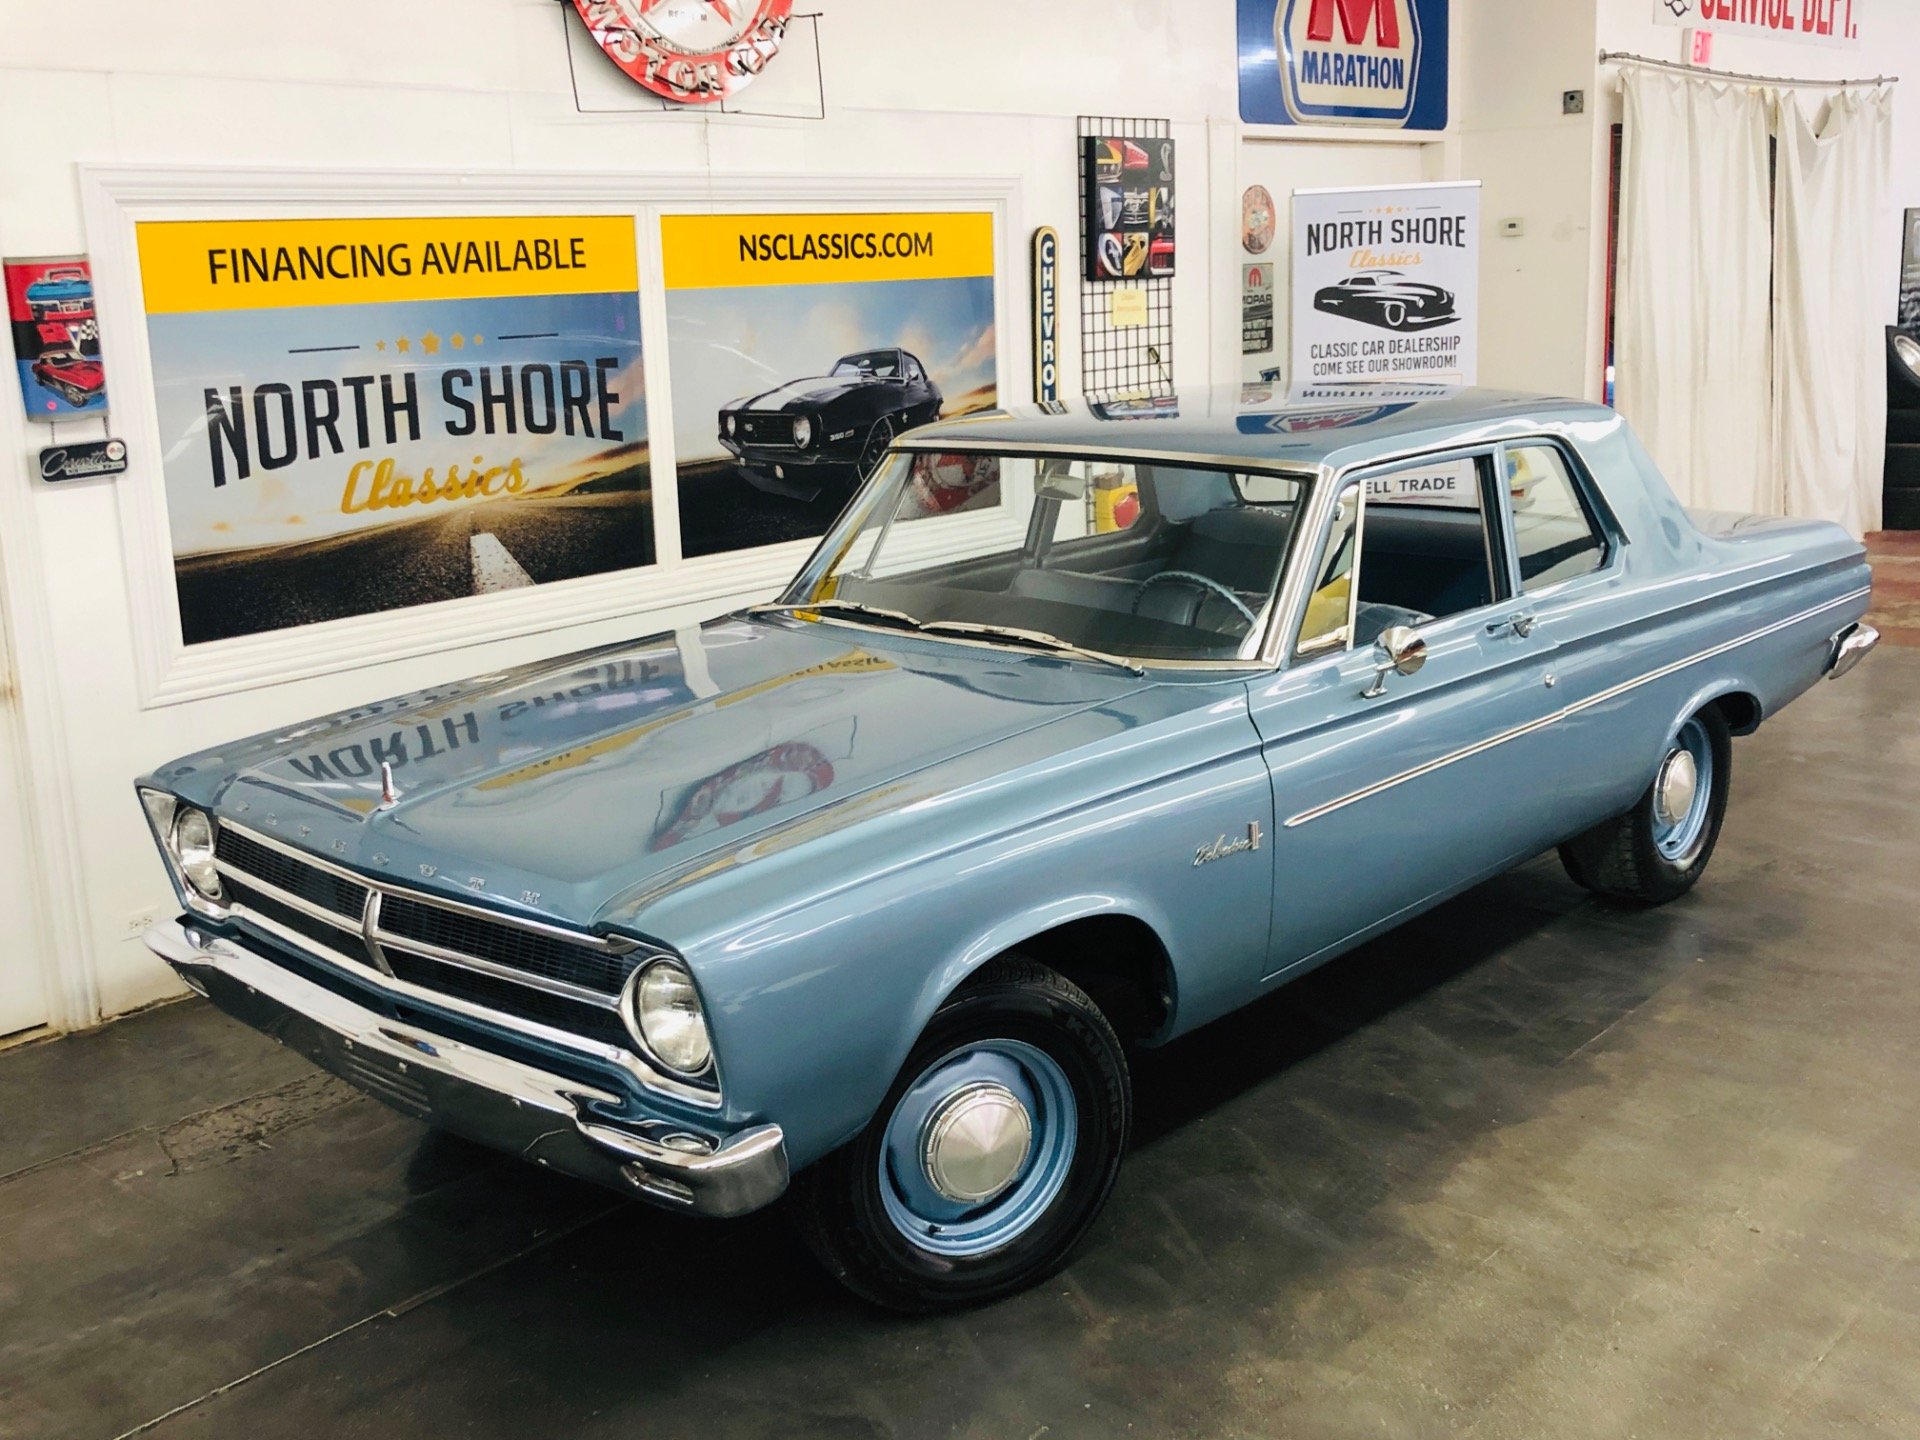 Photo 1965 Plymouth Belvedere - 426 COMMANDO ENGINE - FACTORY SUPER STOCK - 4 SPEED - SEE VIDEO